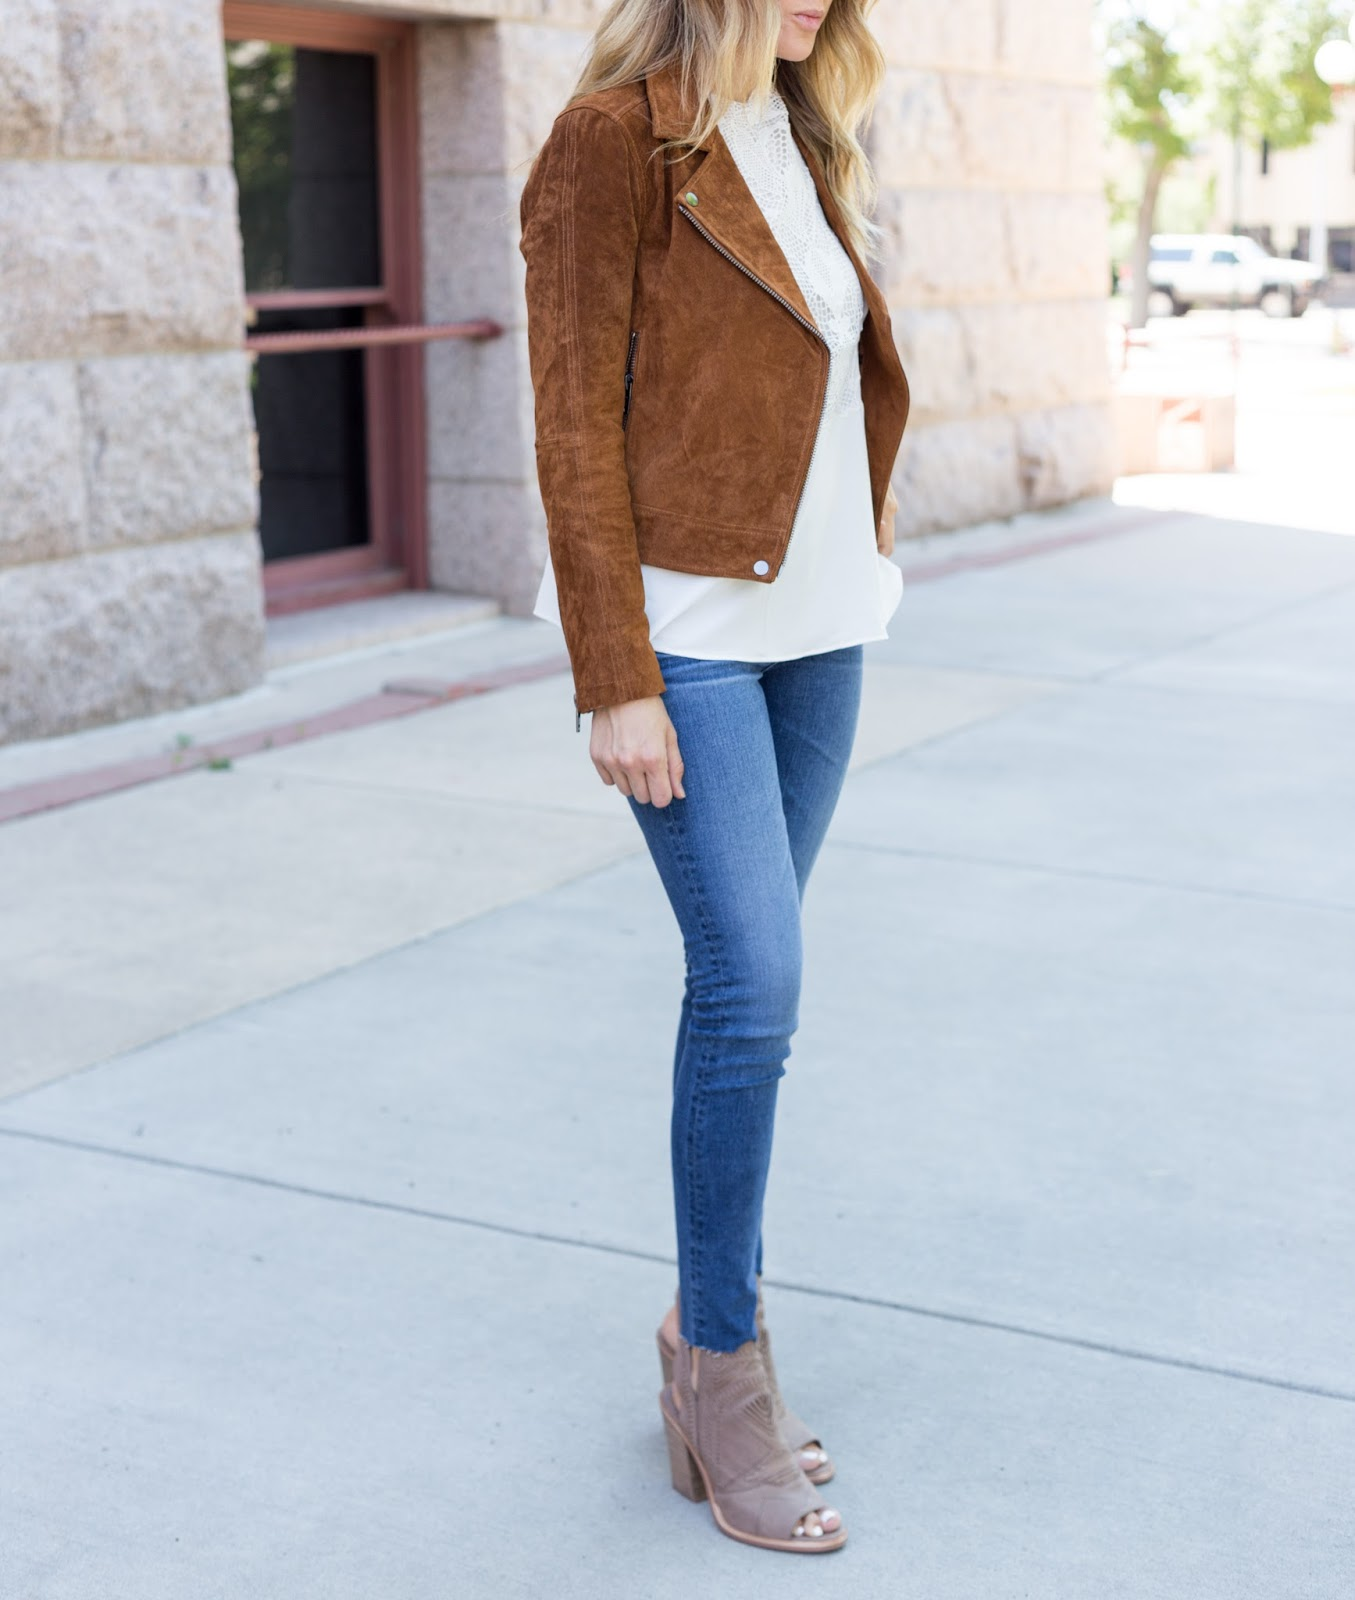 AG Legging Jeans - The Must Have Brown Suede Jacket For Fall by Colorado fashion blog